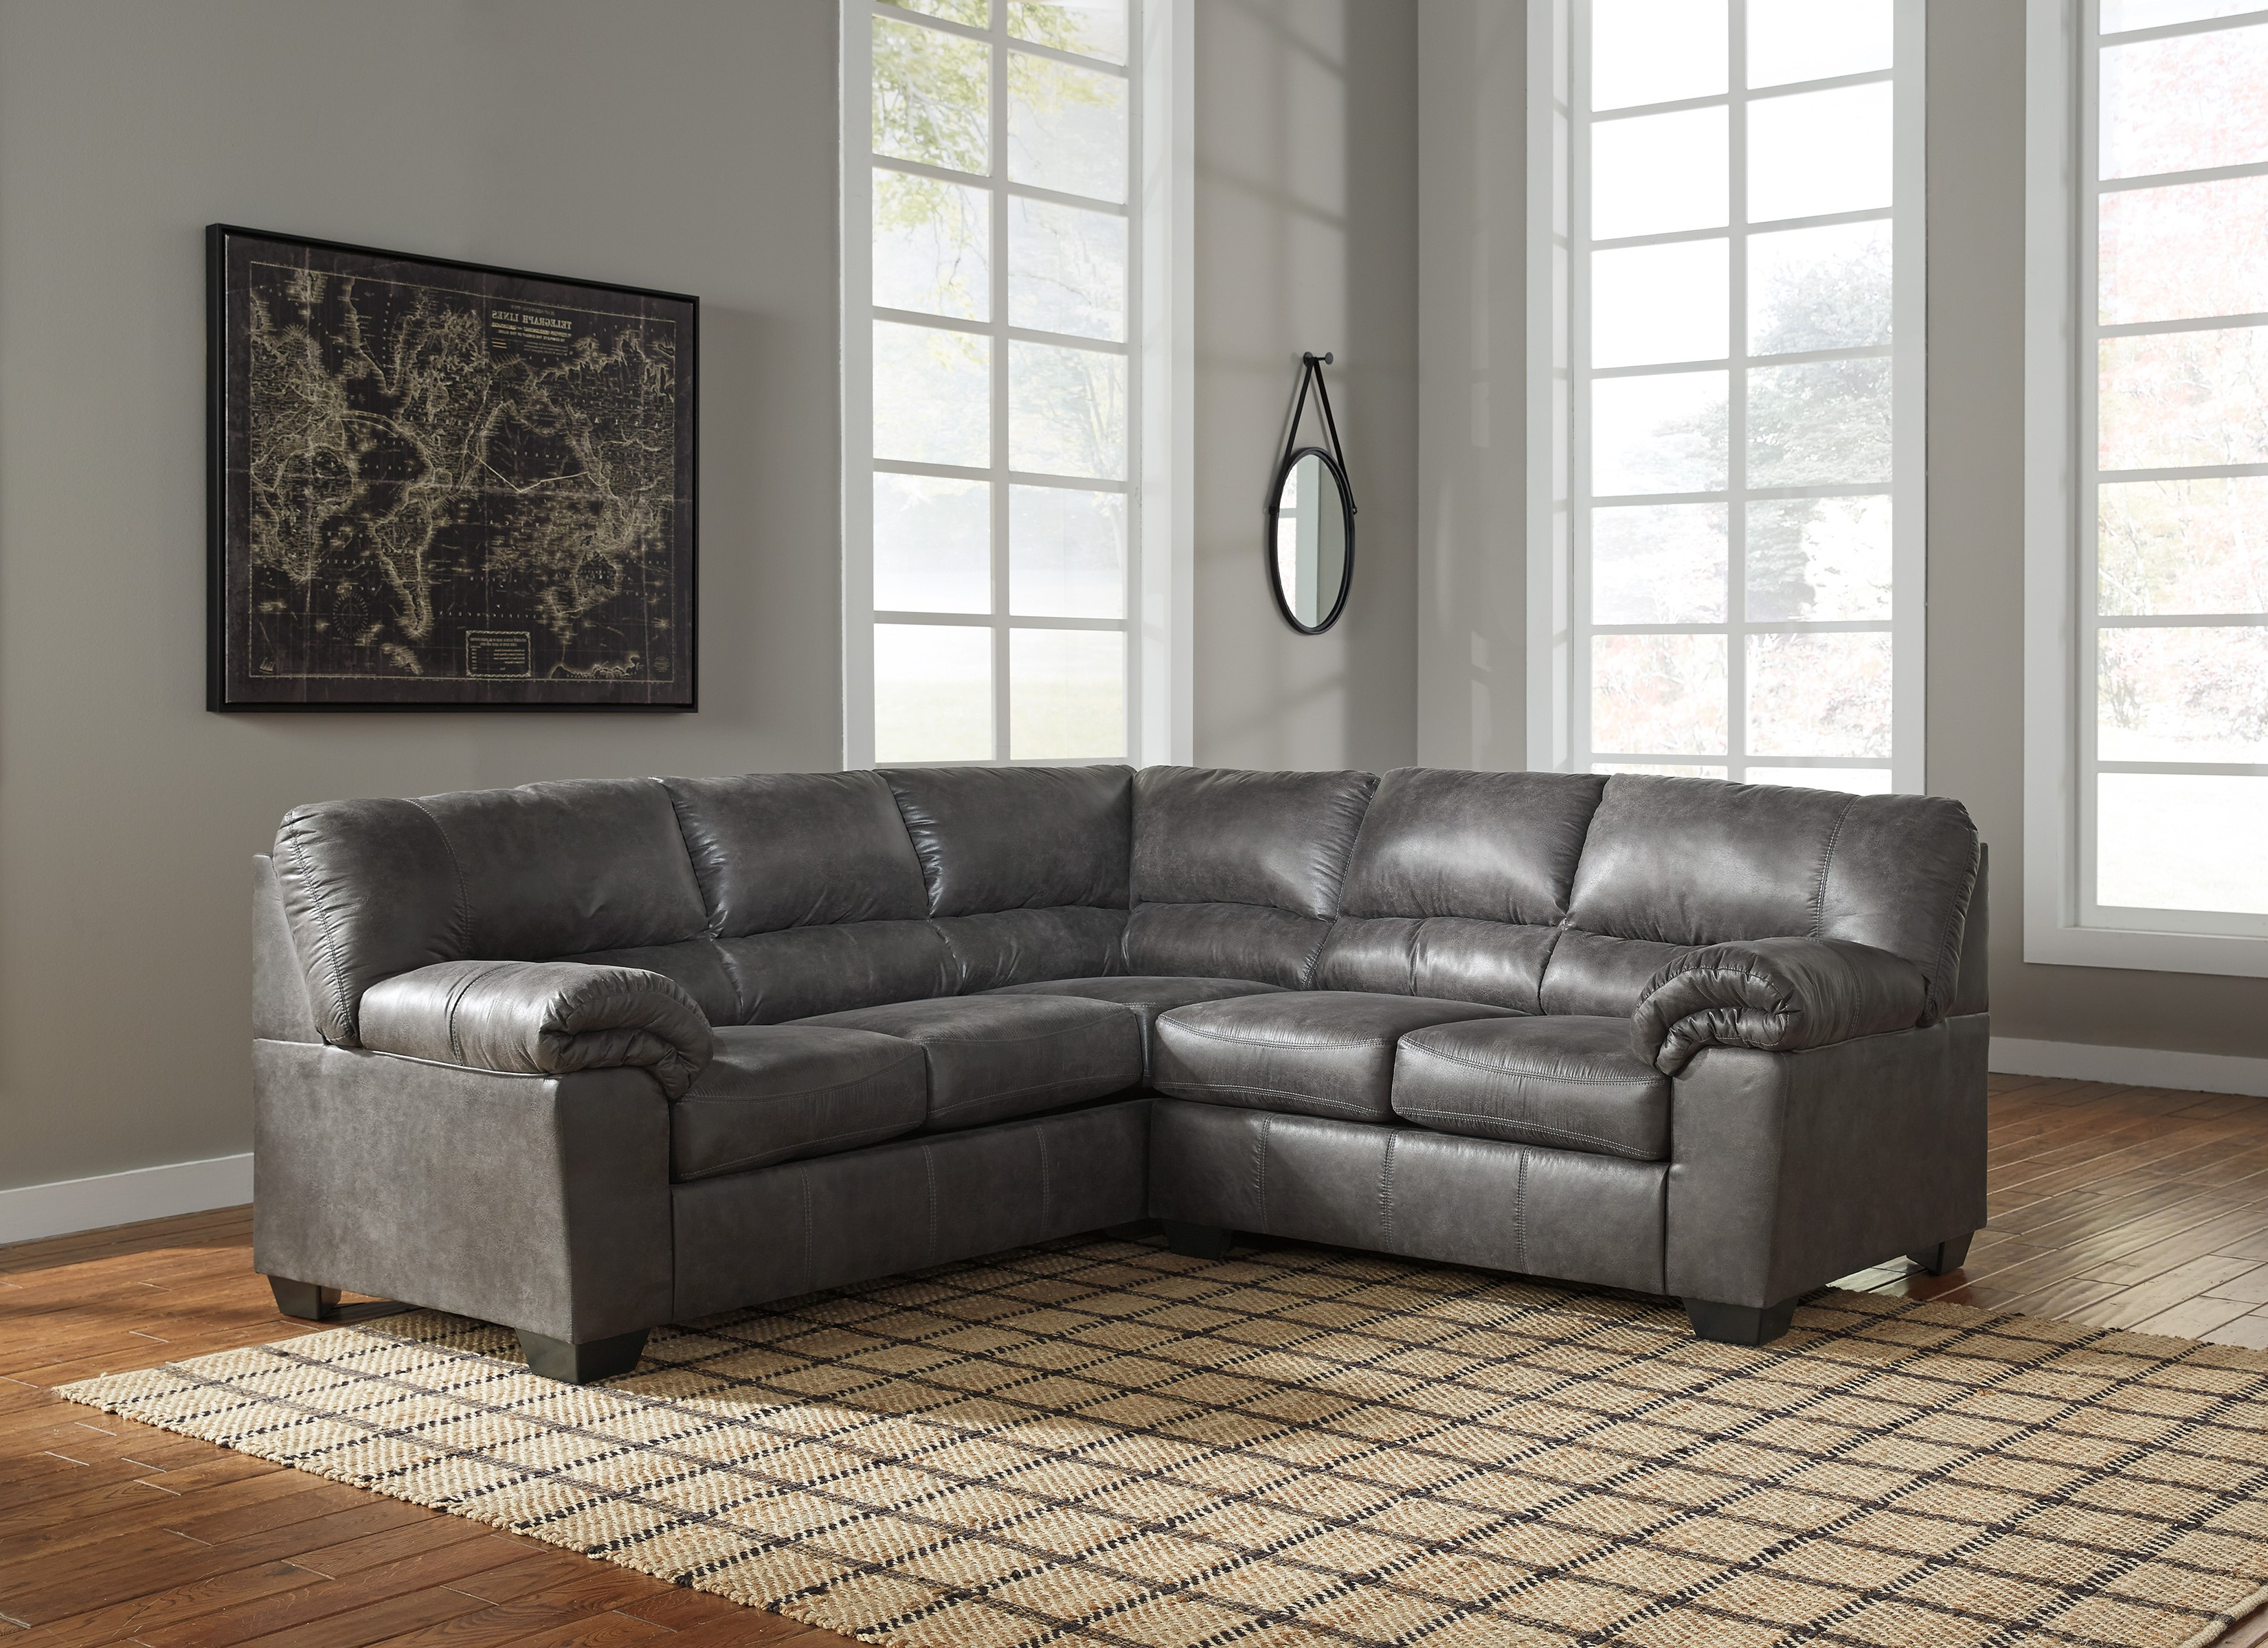 Bladen 56 by Ashley Sofa Sectional Contemporary Design Gray